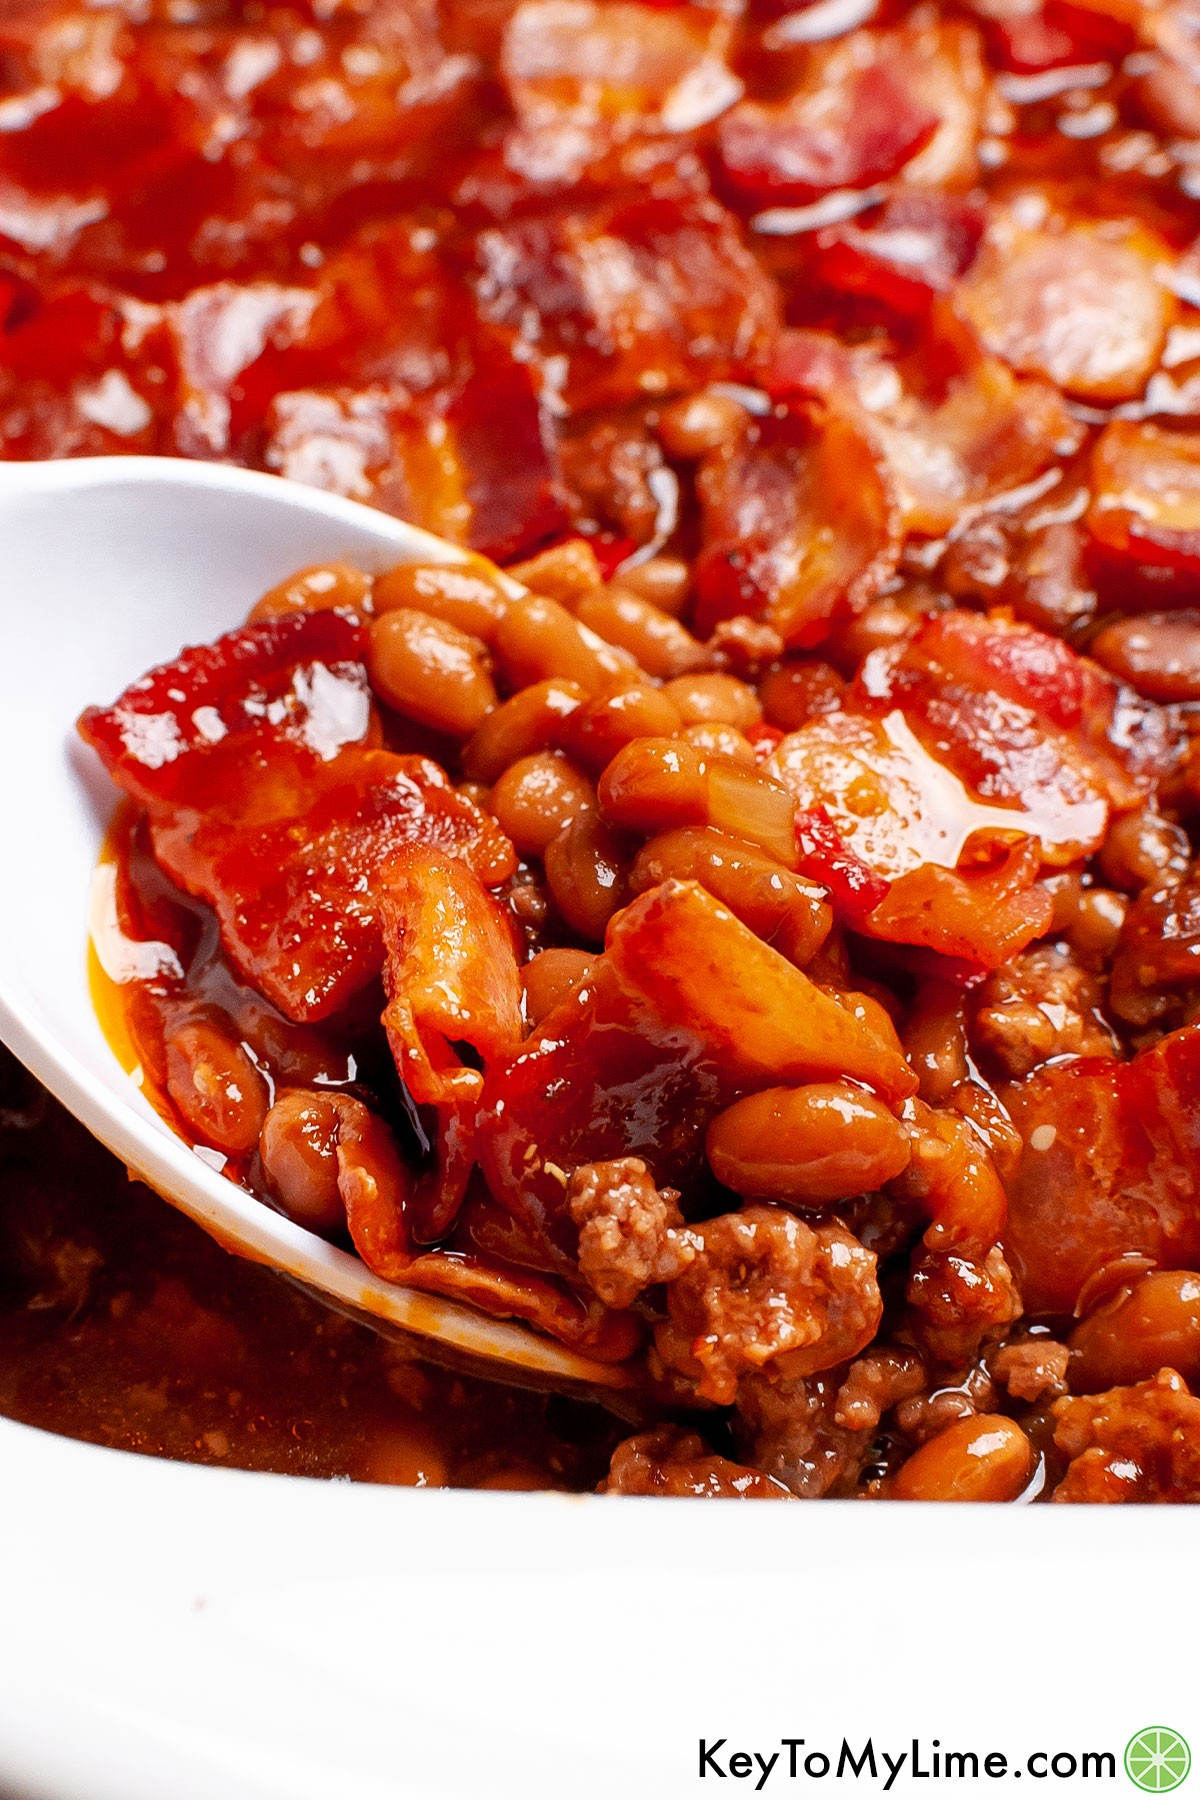 A serving spoon scooping out a portion of baked beans from the casserole dish.